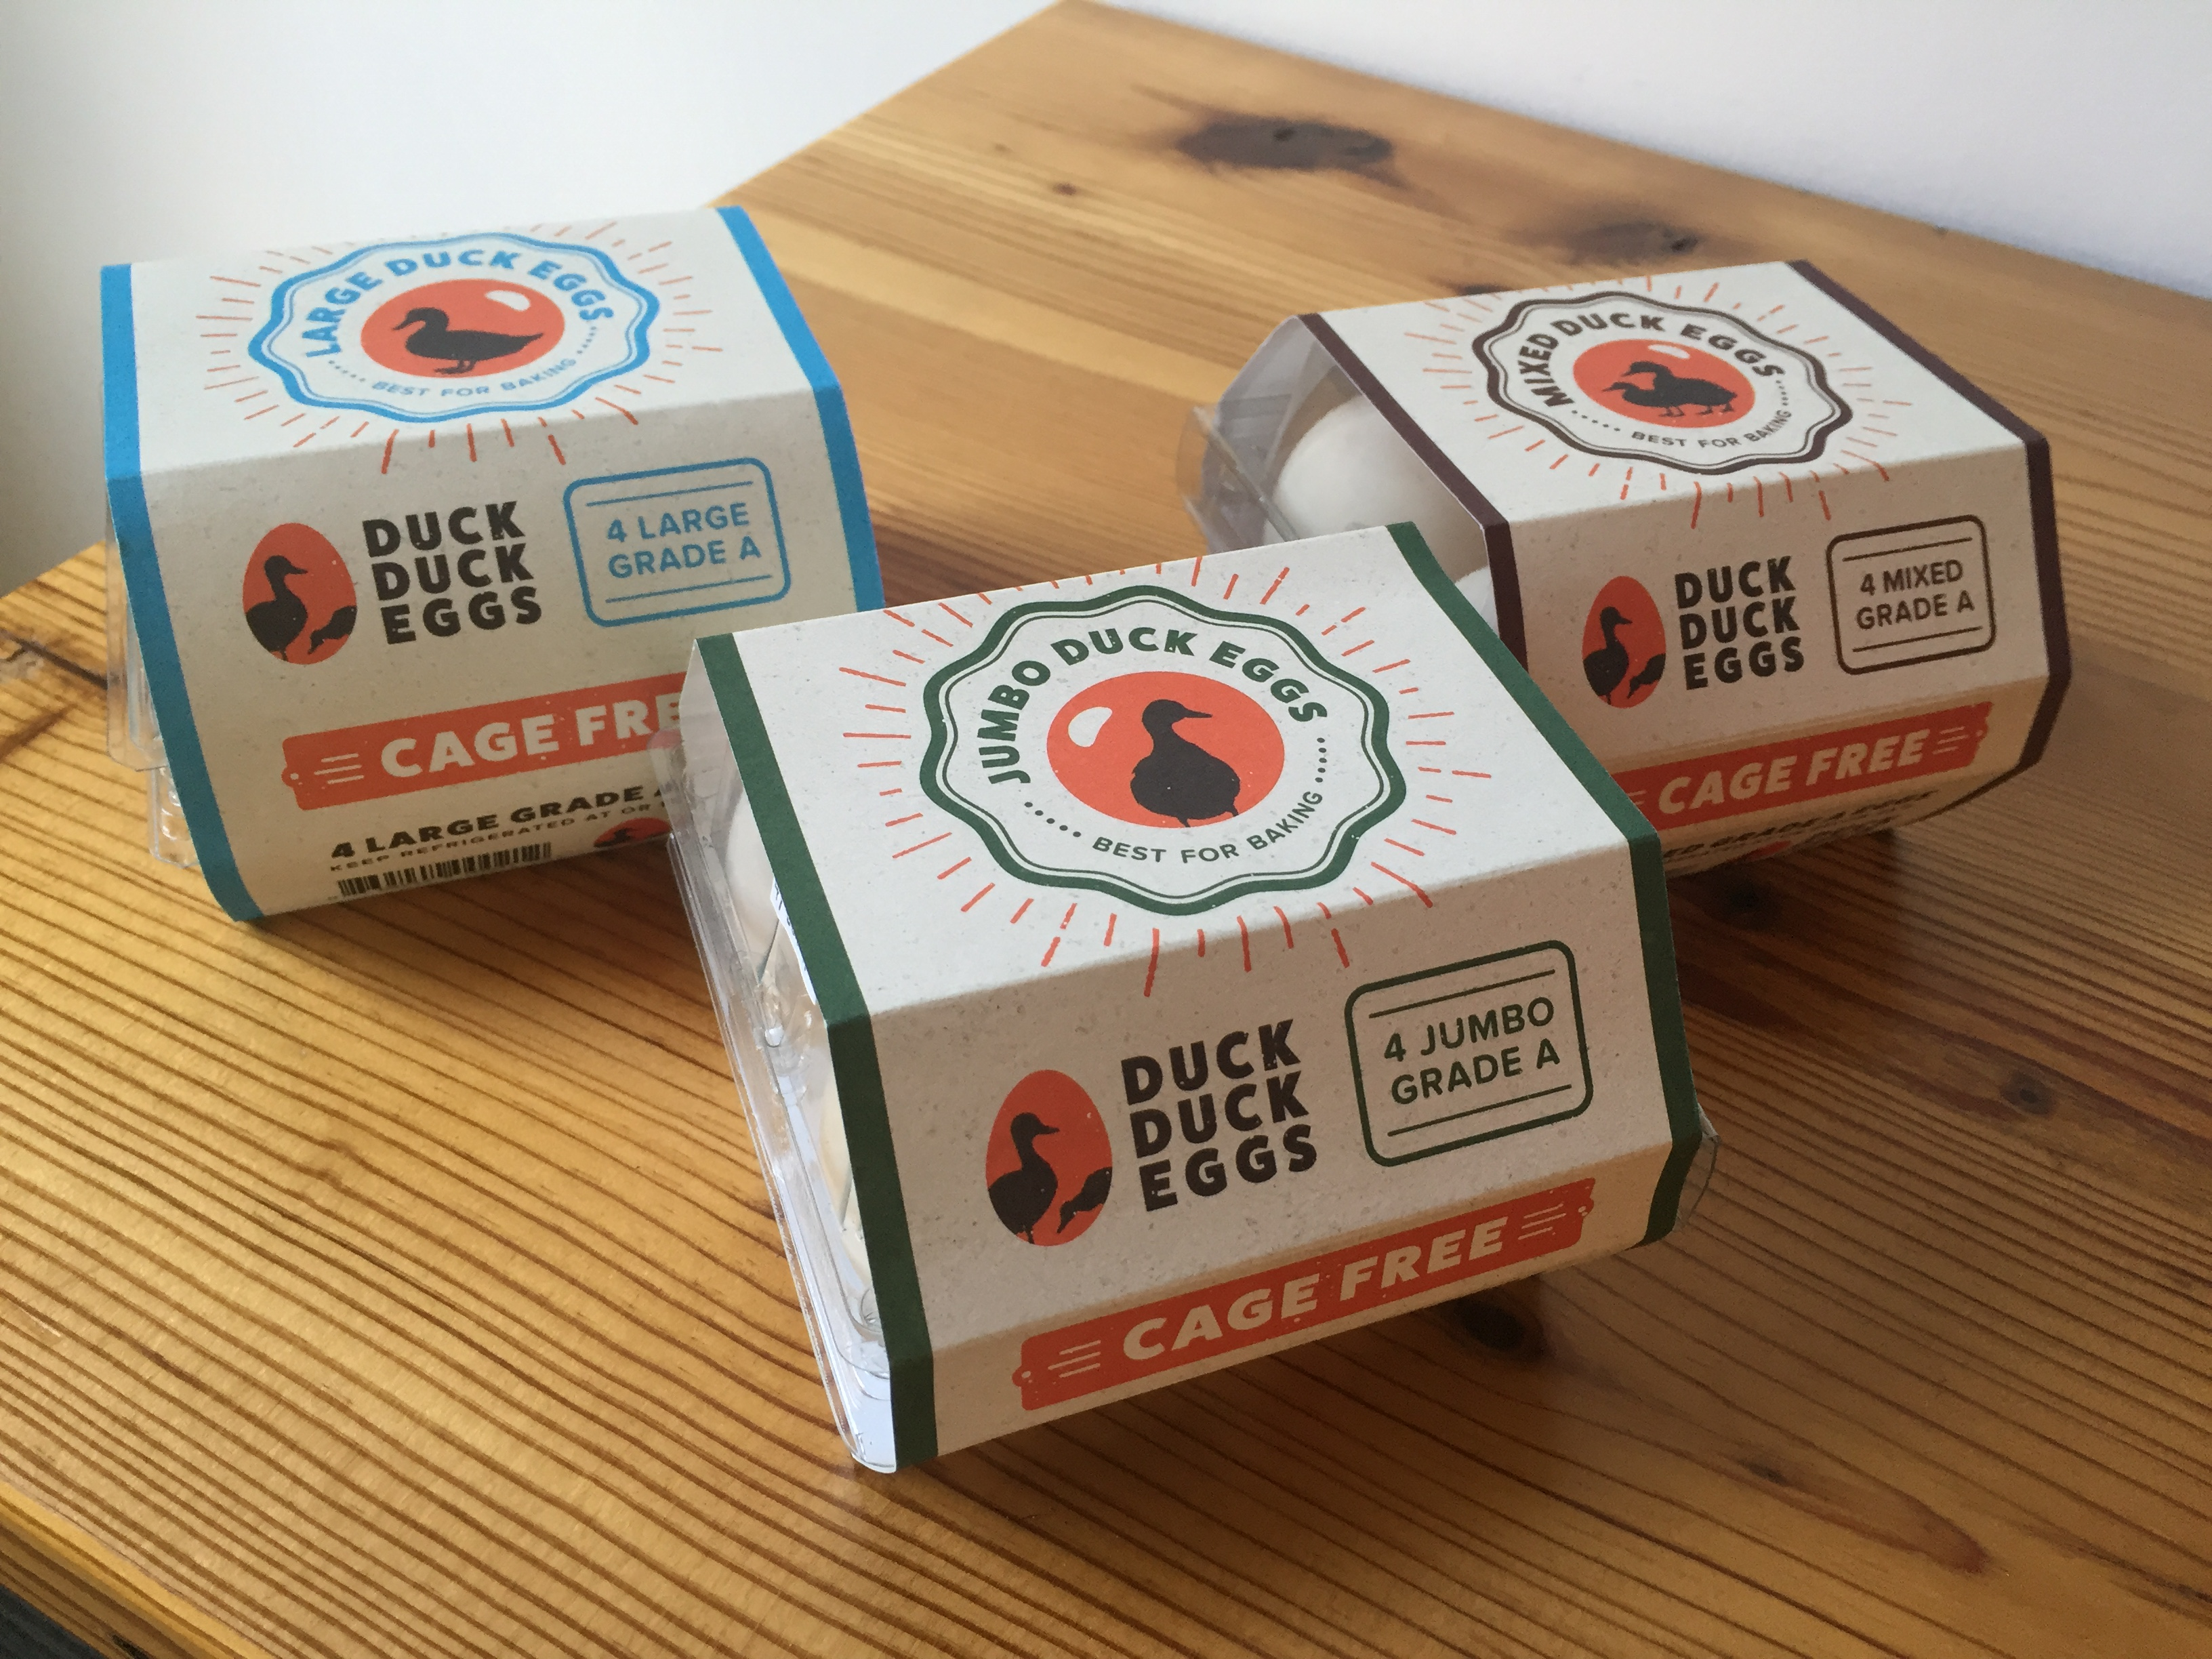 Packaging for Duck Duck Eggs